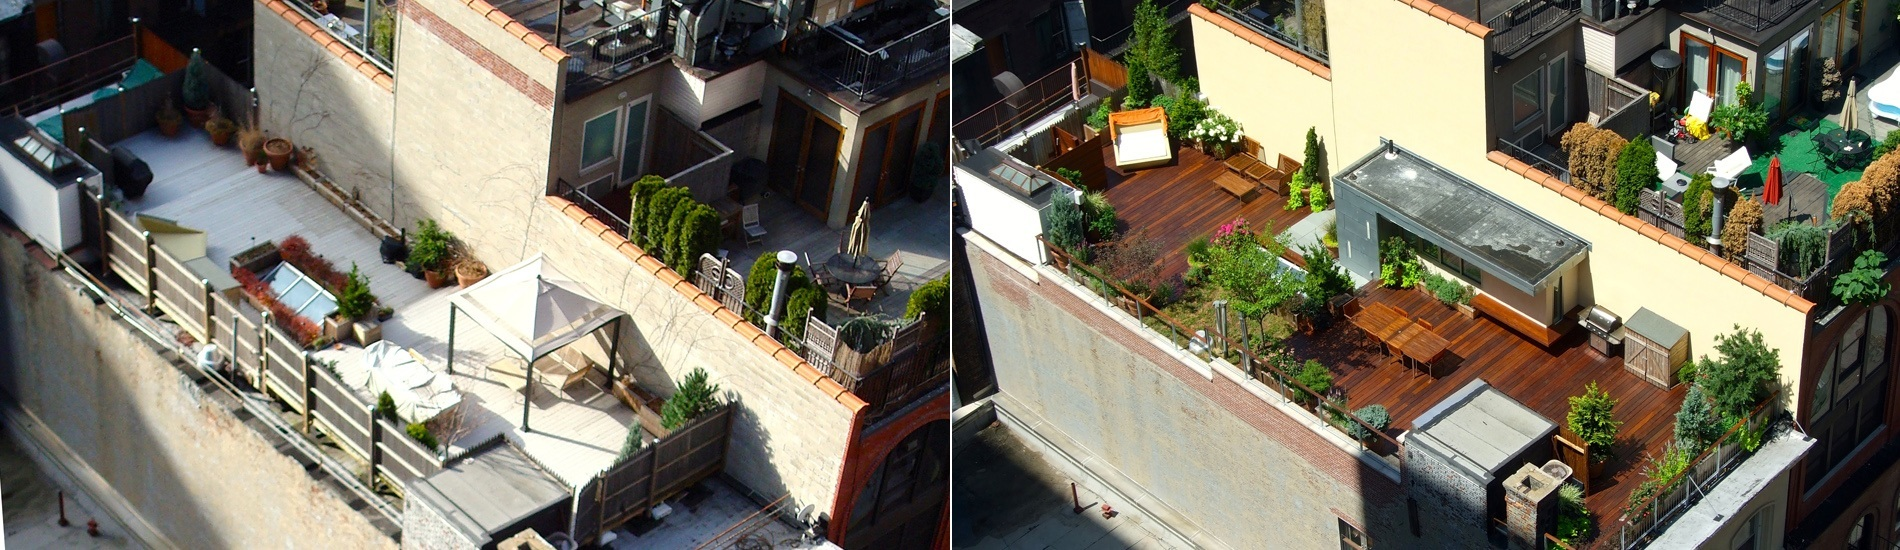 Before and after photo of a rooftop garden in Tribeca, NYC.